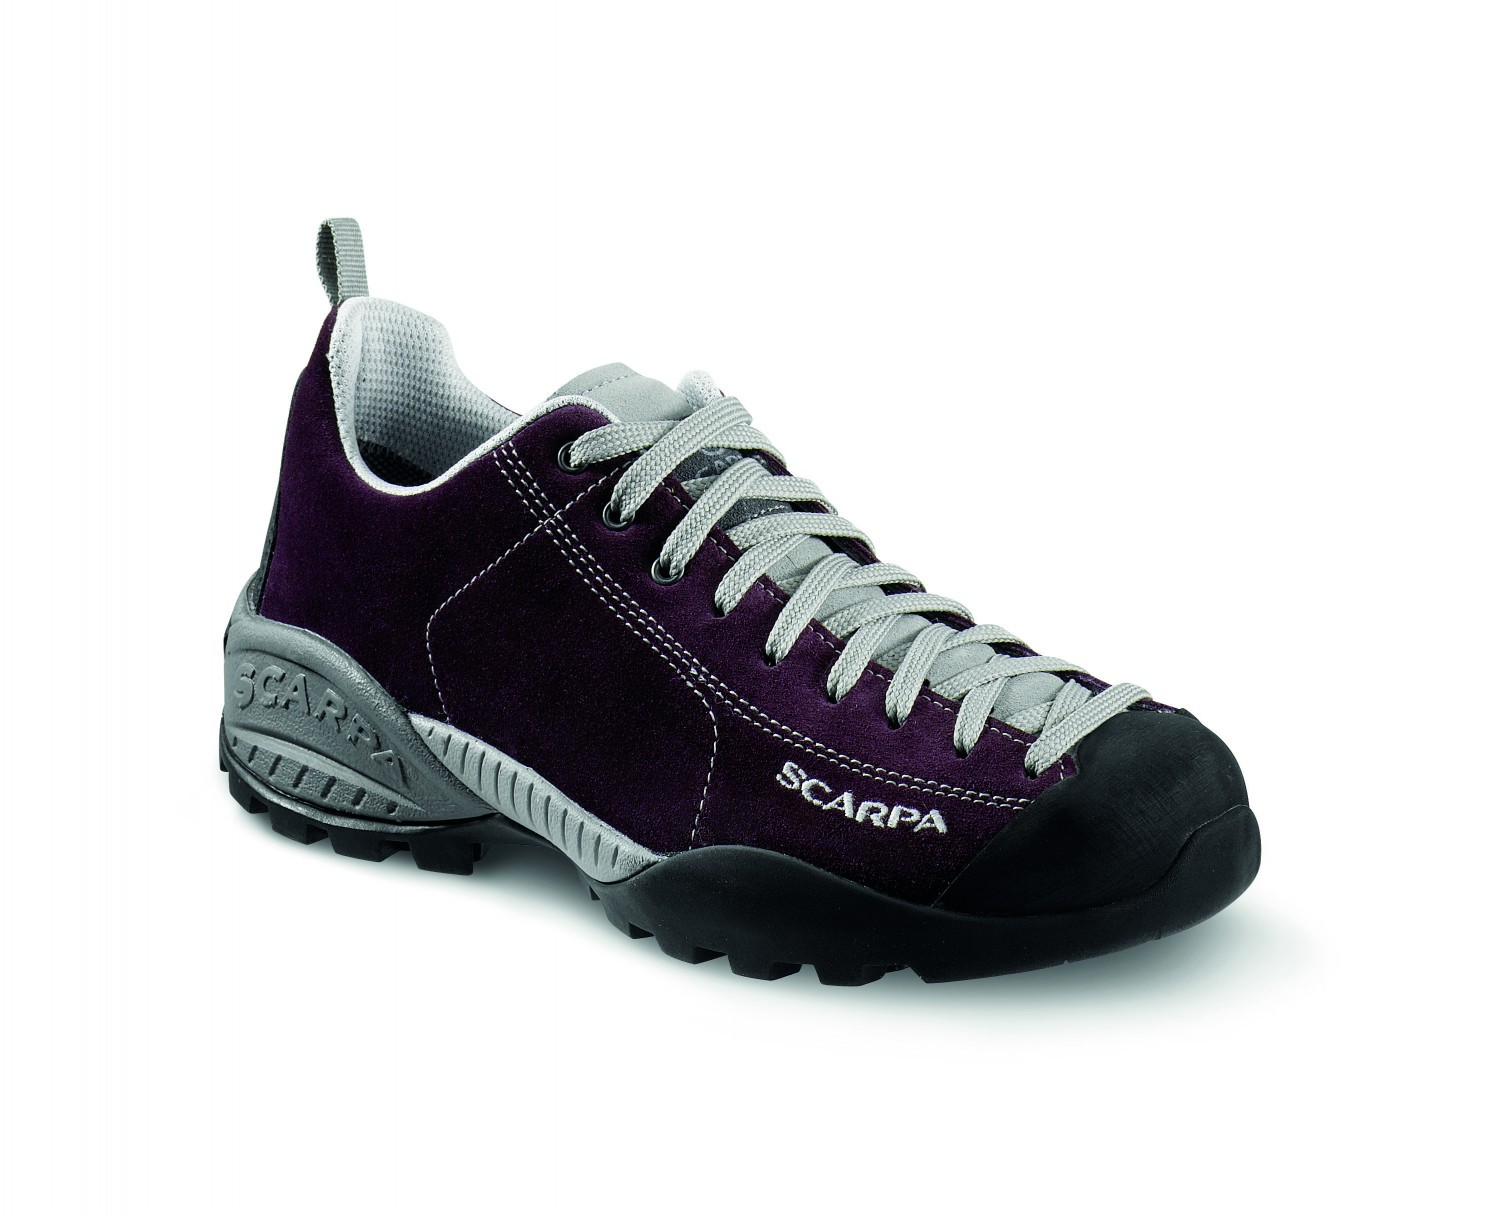 Scarpa - Mojito GTX Ruby Wine - Approach Shoes - 37